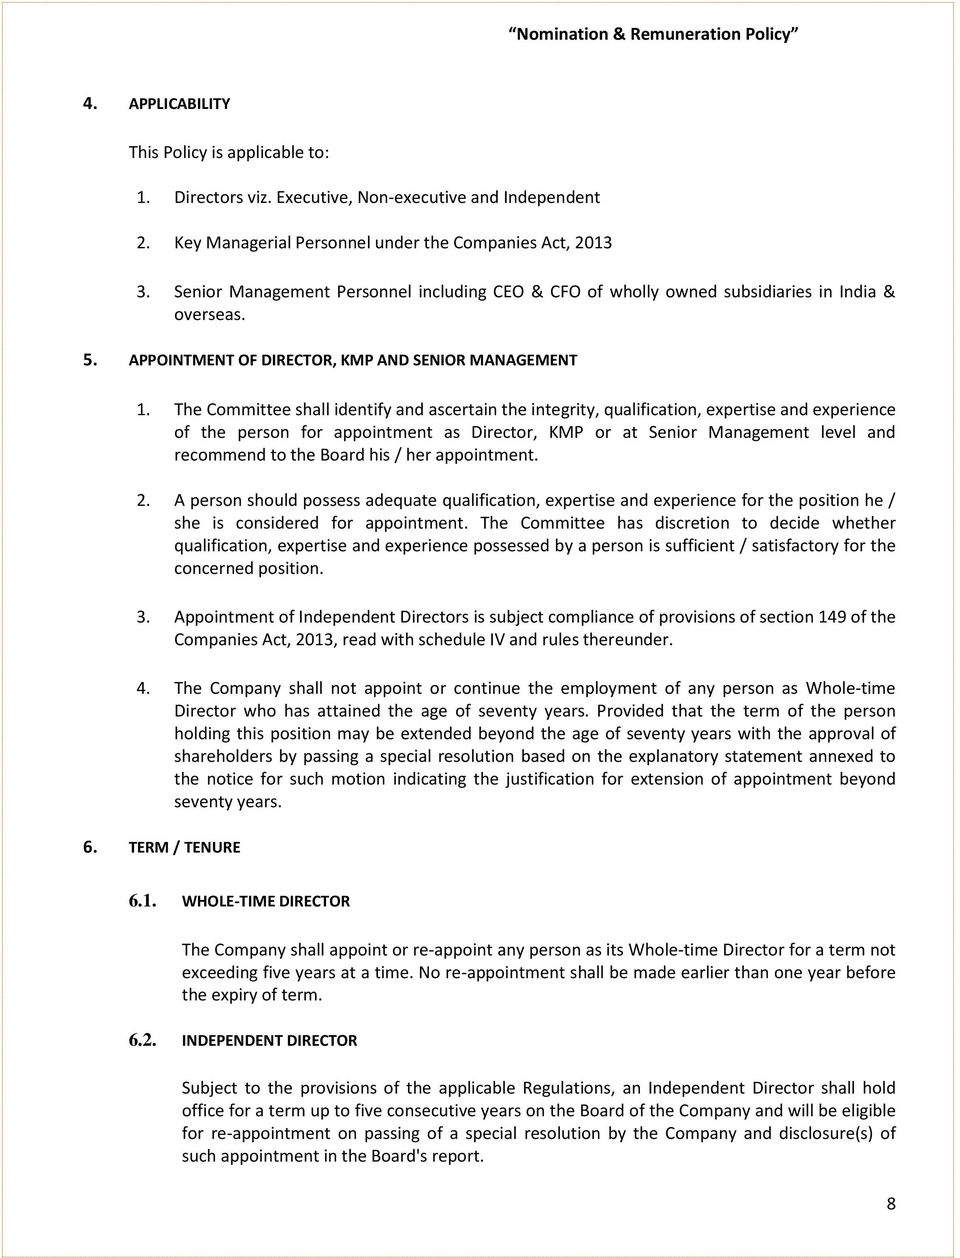 The Committee shall identify and ascertain the integrity, qualification, expertise and experience of the person for appointment as Director, KMP or at Senior Management level and recommend to the